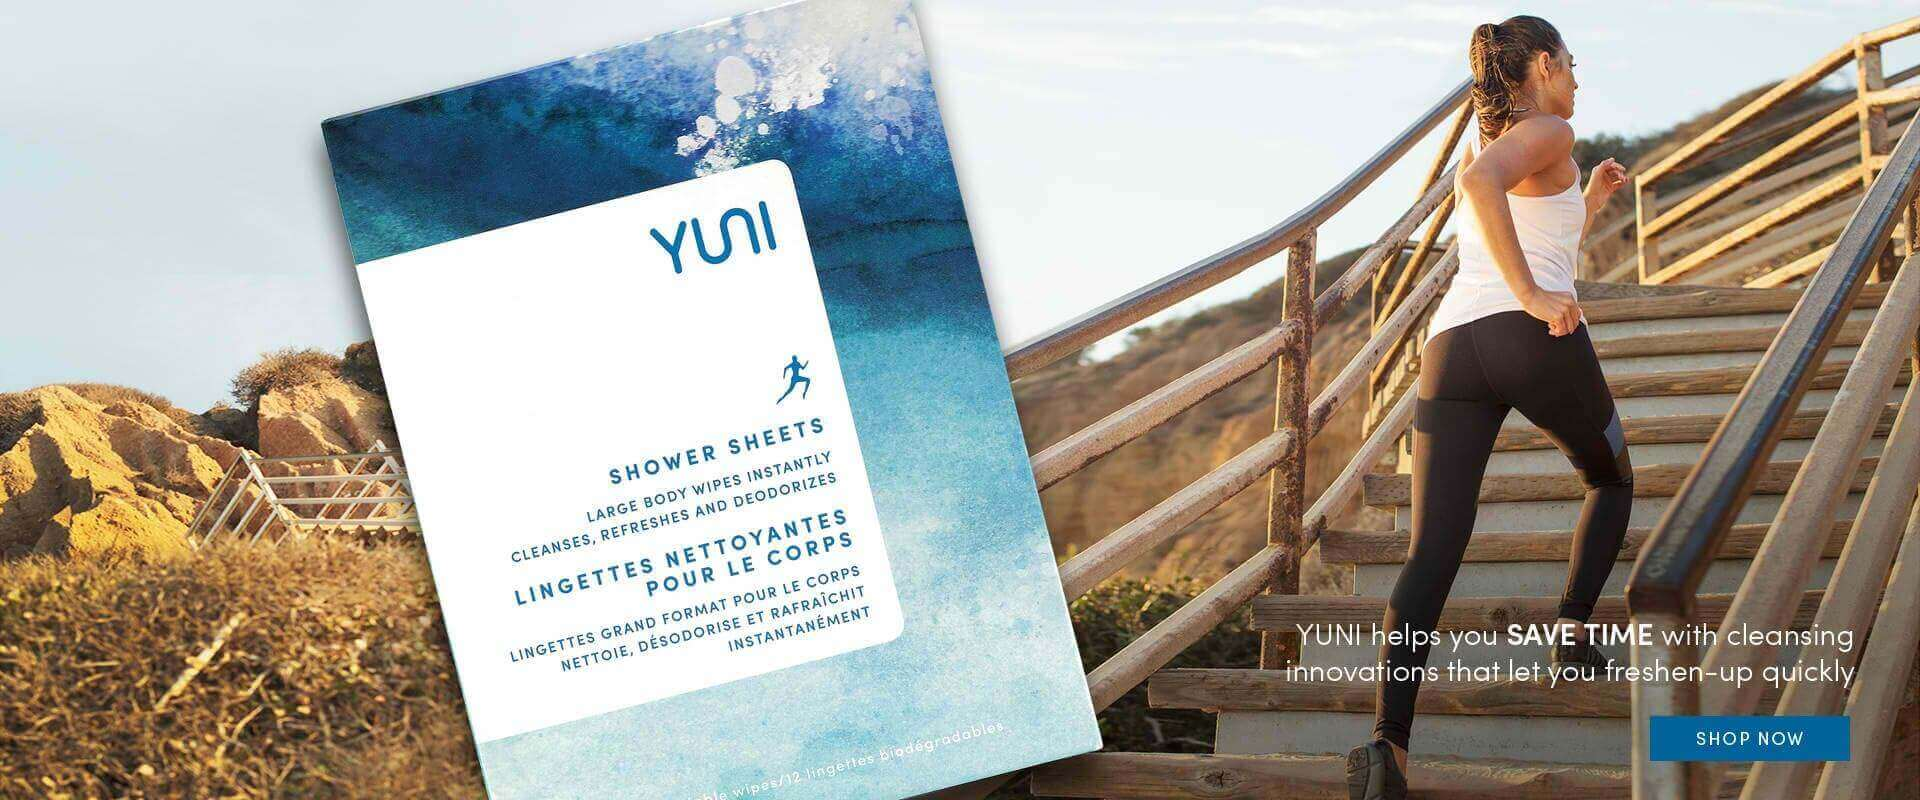 YUNI Beauty Banner Image- Shower Sheet